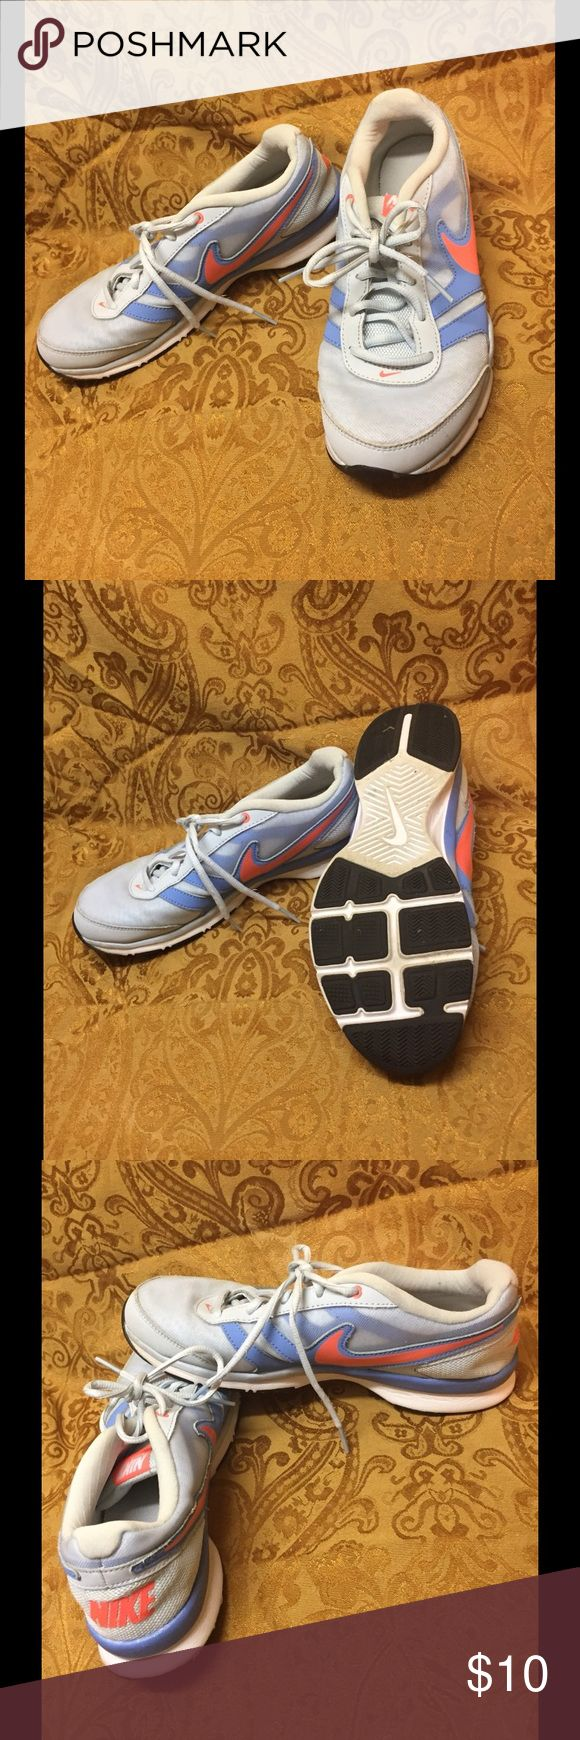 Sz 10 Nike Sneakers Size 10 Light Blue, White & Splash of Neon Orange Nike Sneakers. These are used but still in good condition. They do show some wear, but still have some tread and plenty of life in them. Non-smoking home with no pets. Bundle2Save Nike Shoes Sneakers